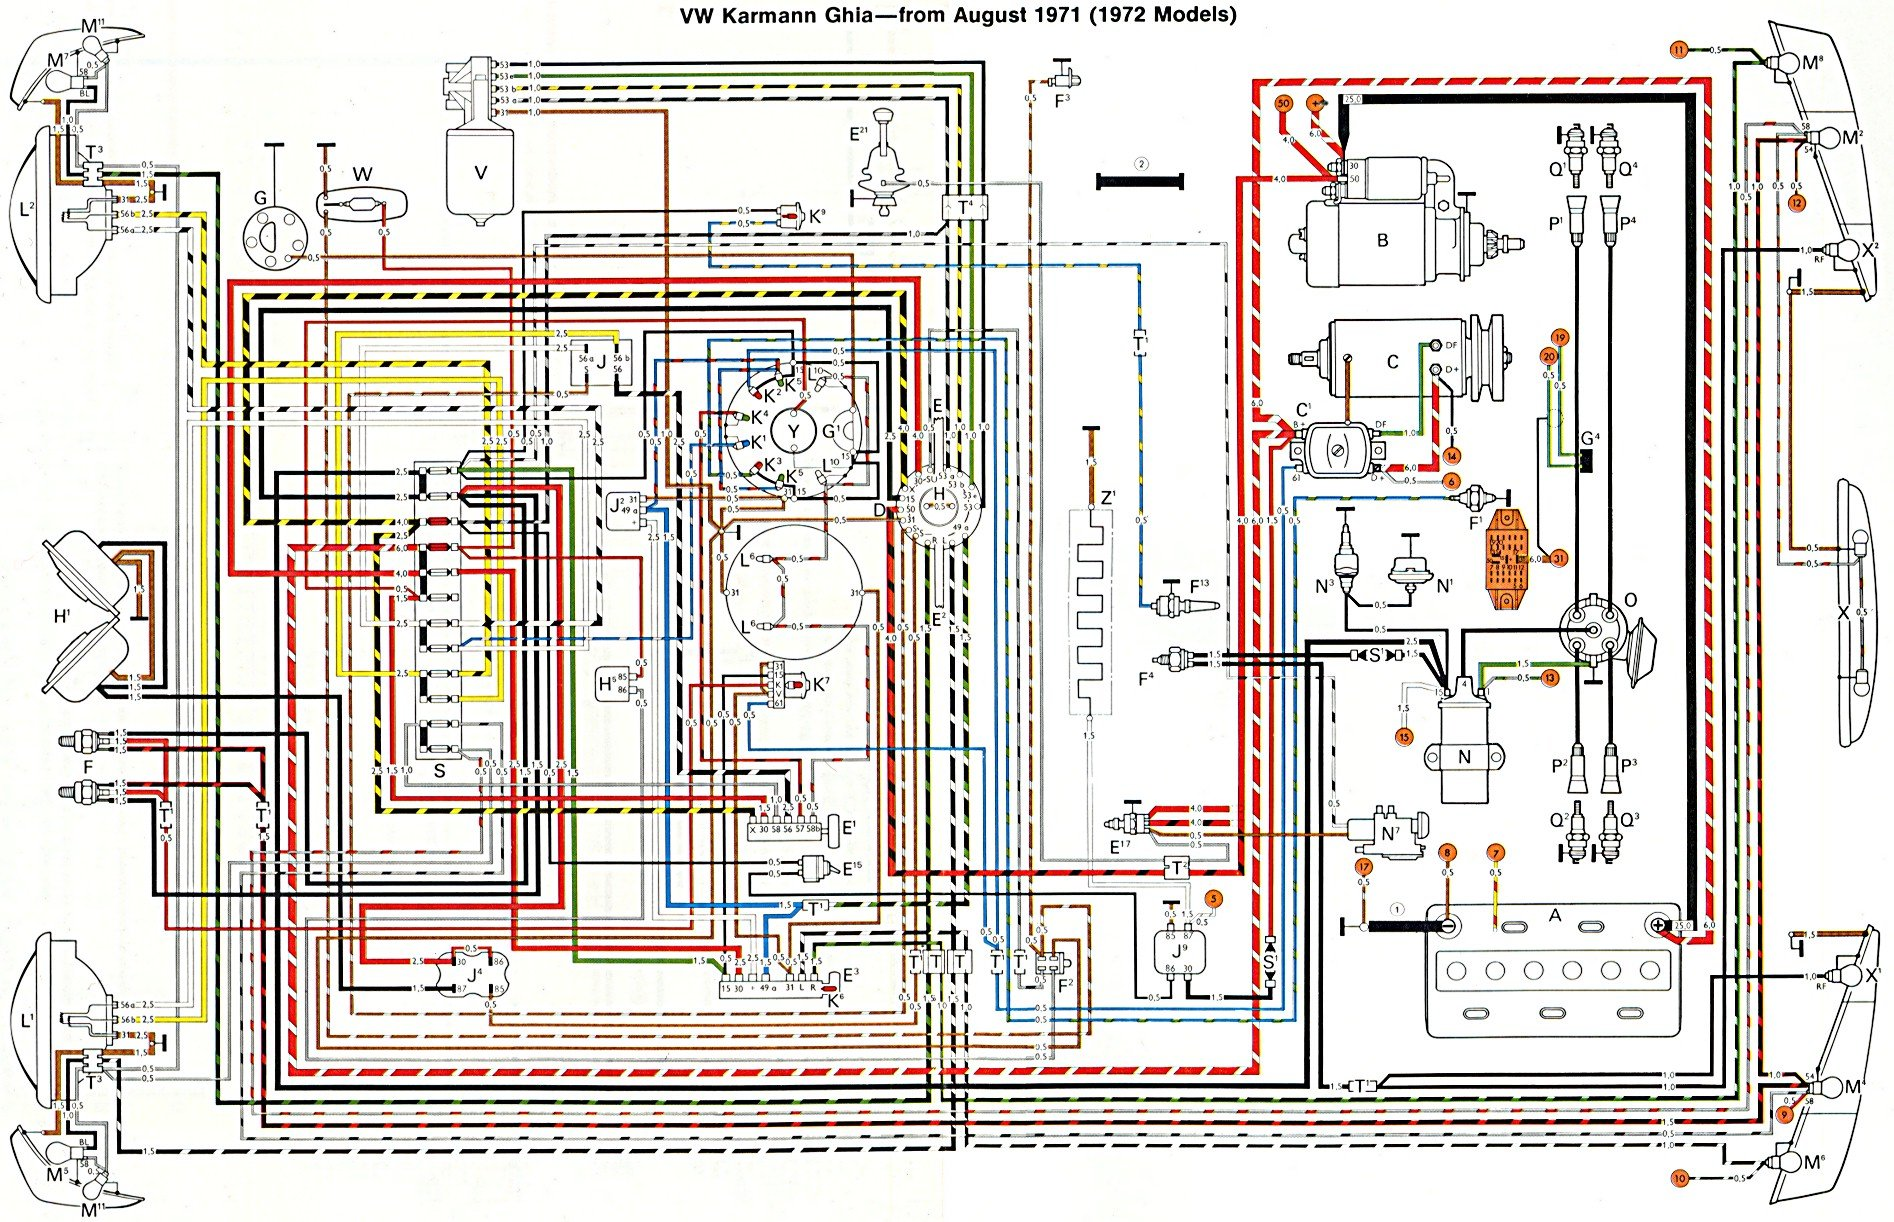 74 karmann ghia wiring diagram 1967 vw karmann ghia wiring diagram thesamba.com :: karmann ghia wiring diagrams